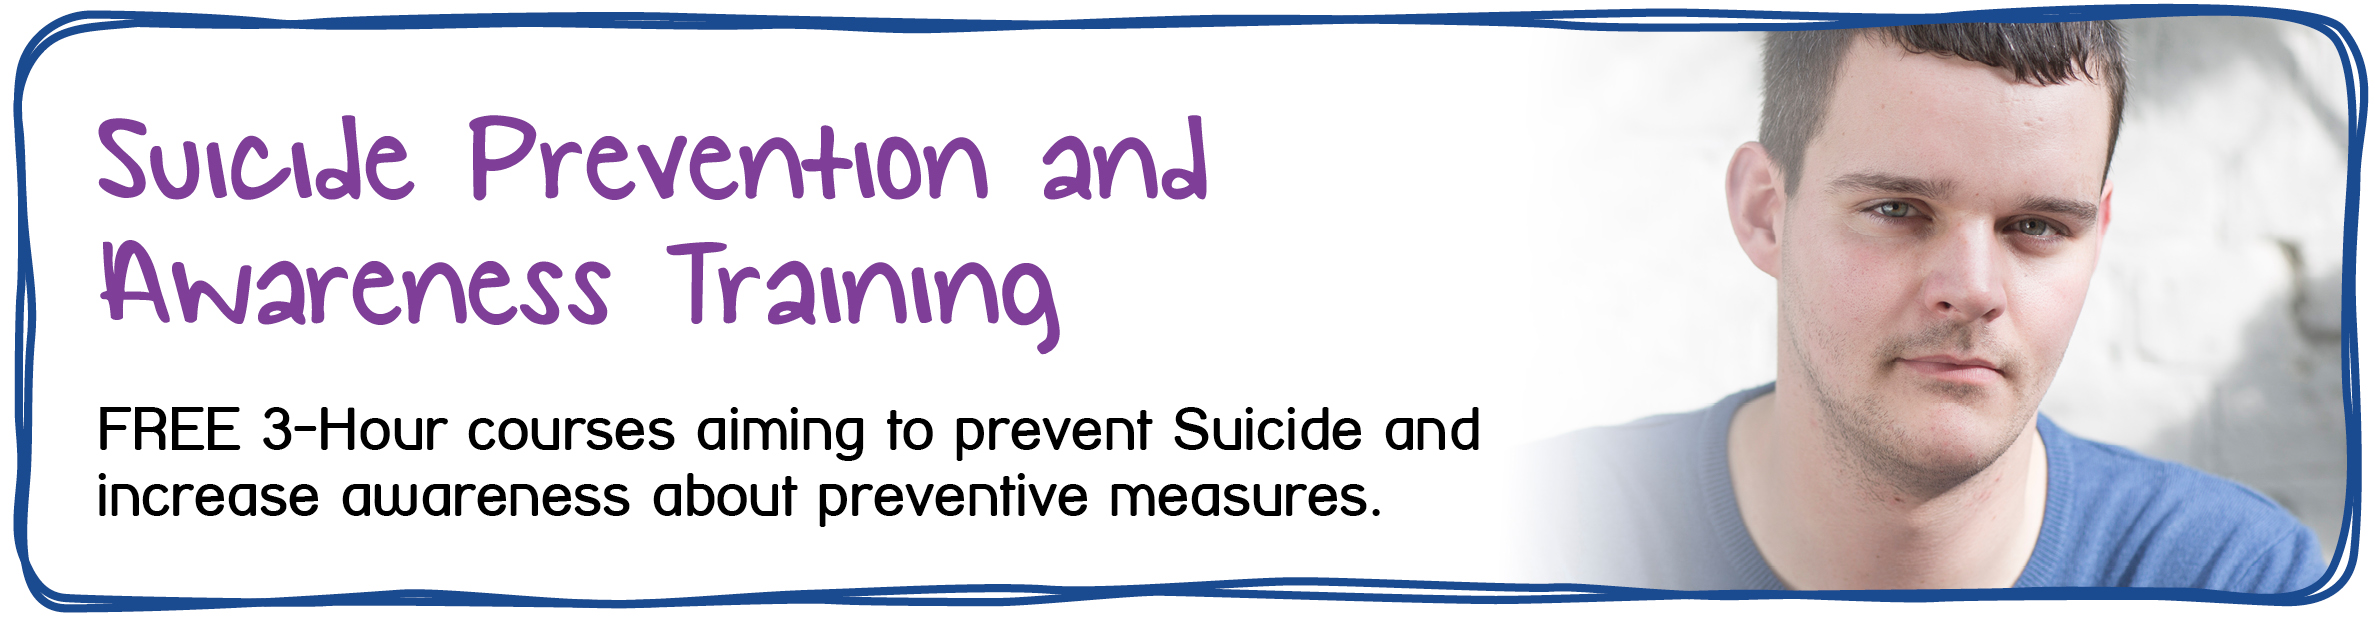 Suicide Prevention & Awareness - Free 3-hour courses aiming to prevent suicide and increase awareness about preventive measures.